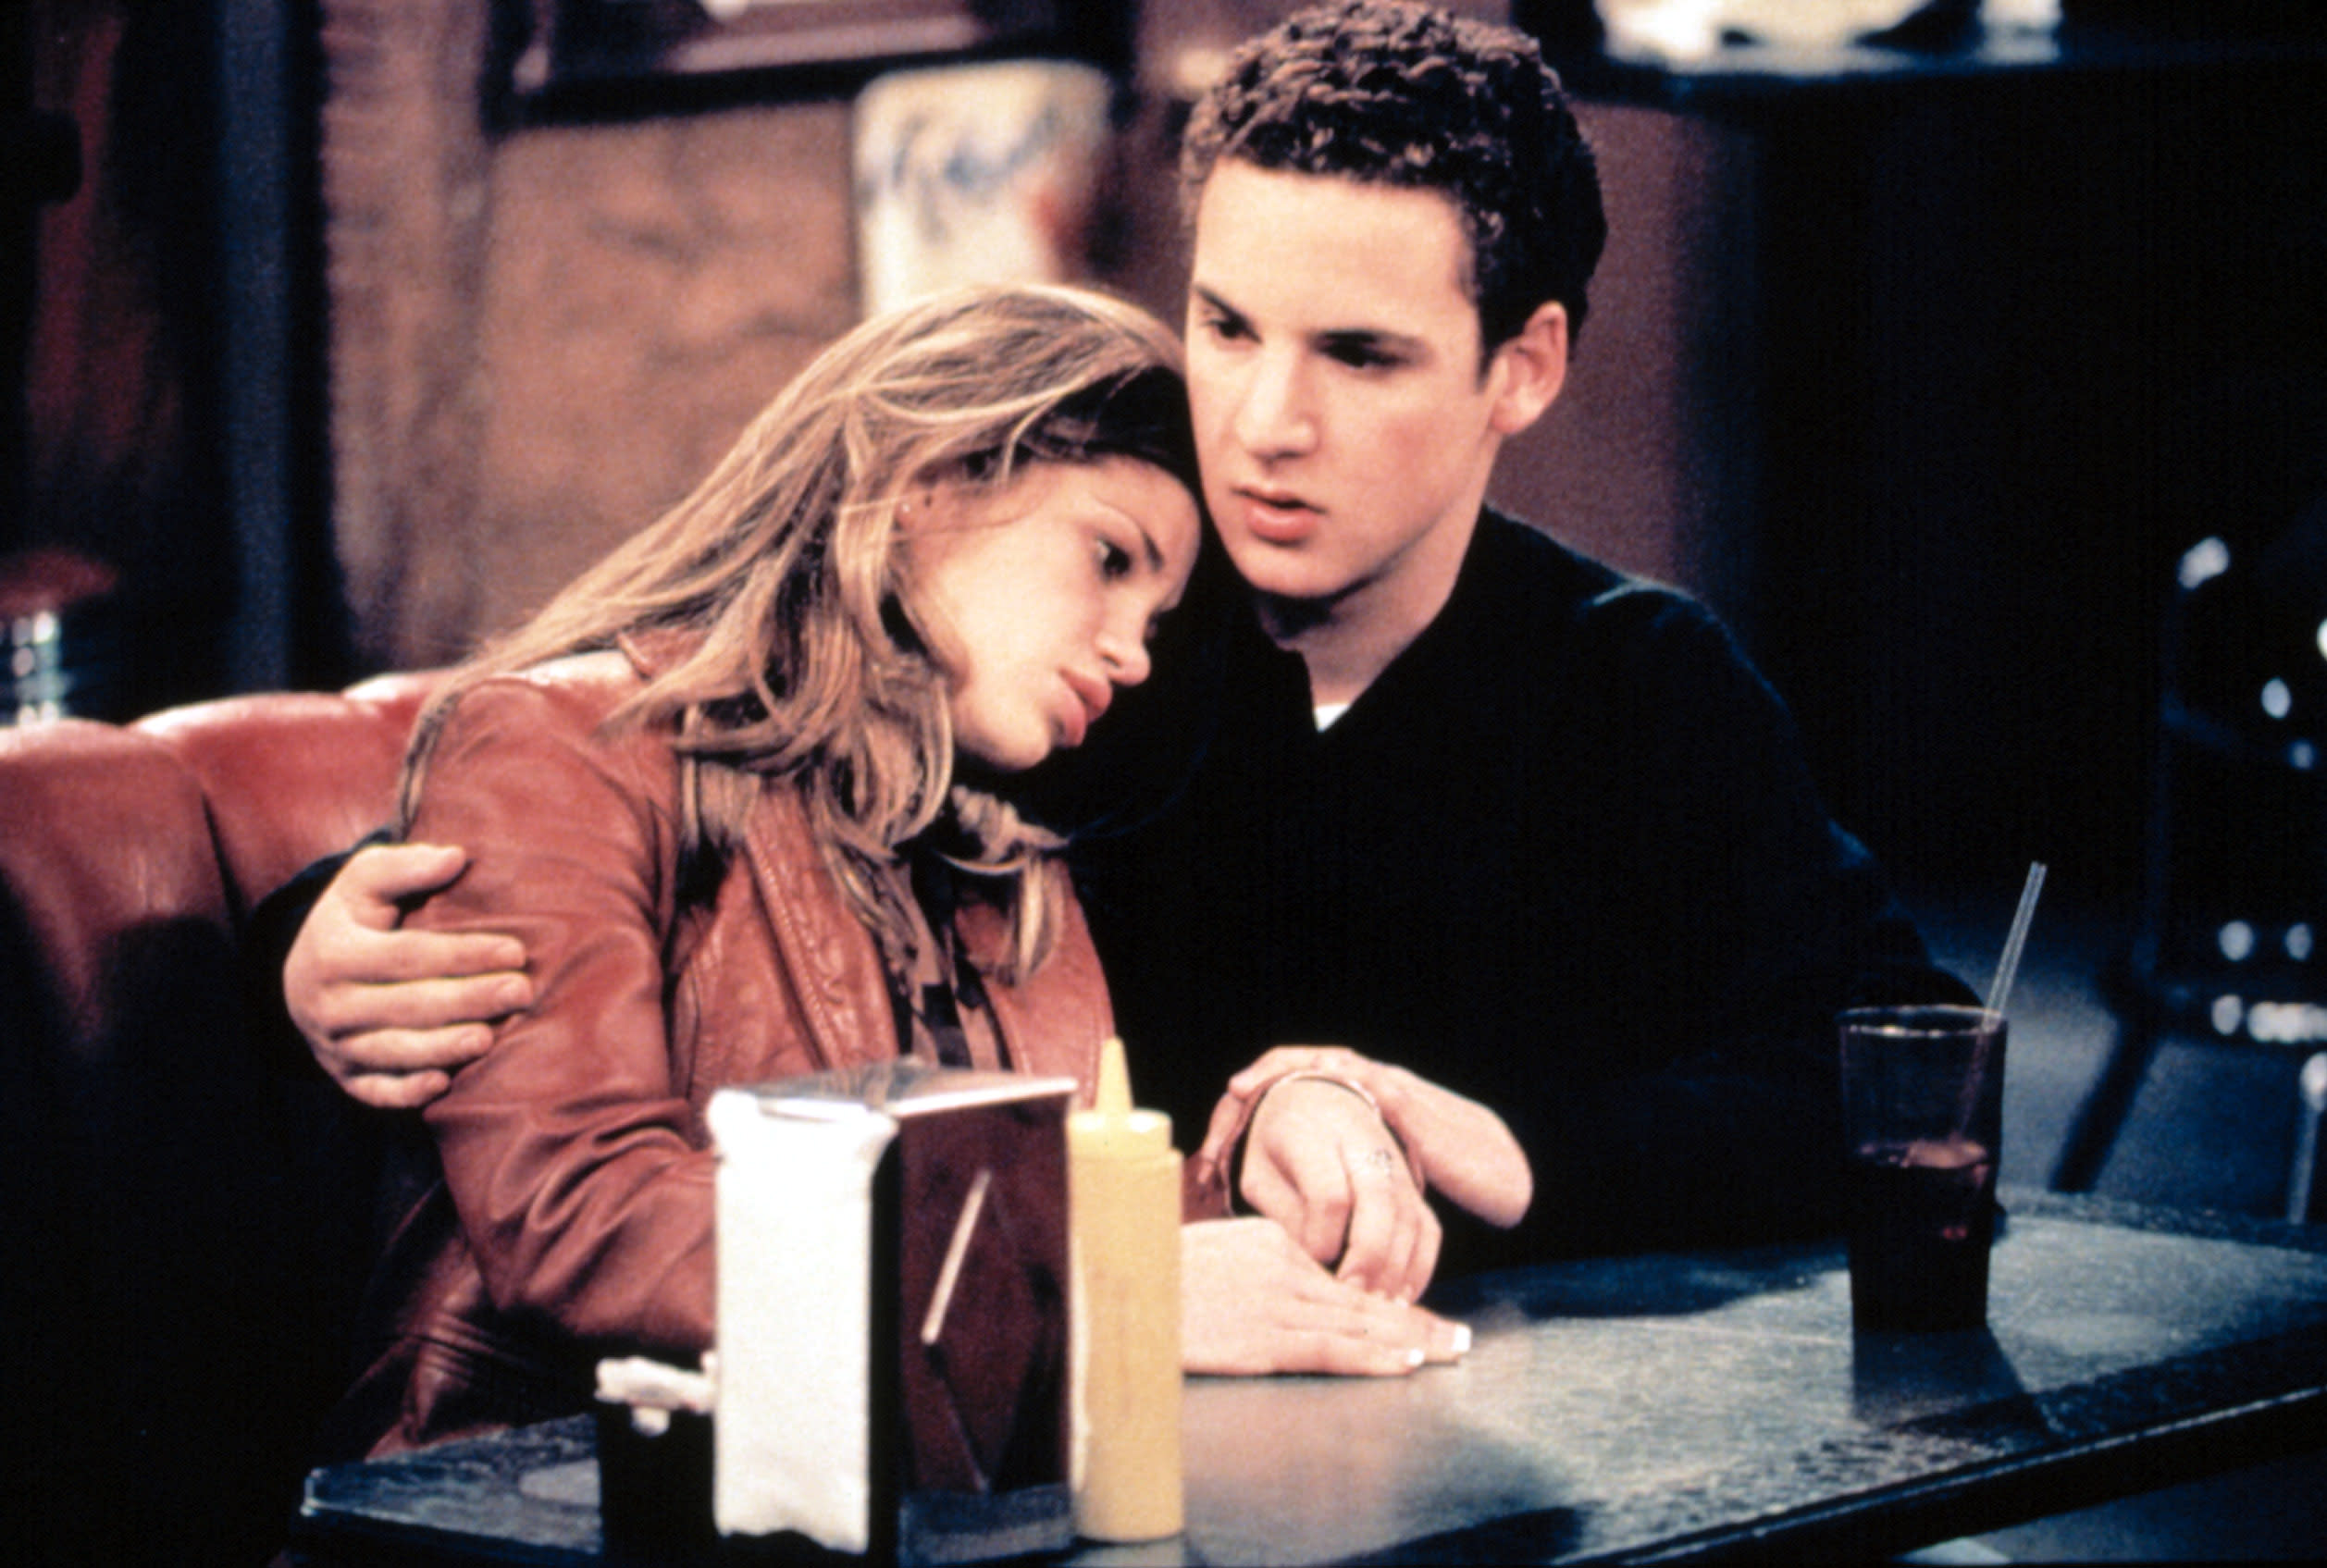 Topanga (Fishel) and Cory (Savage) share an embrace in 'Boy Meets World' (Photo: Touchstone Television/courtesy Everett Collection)